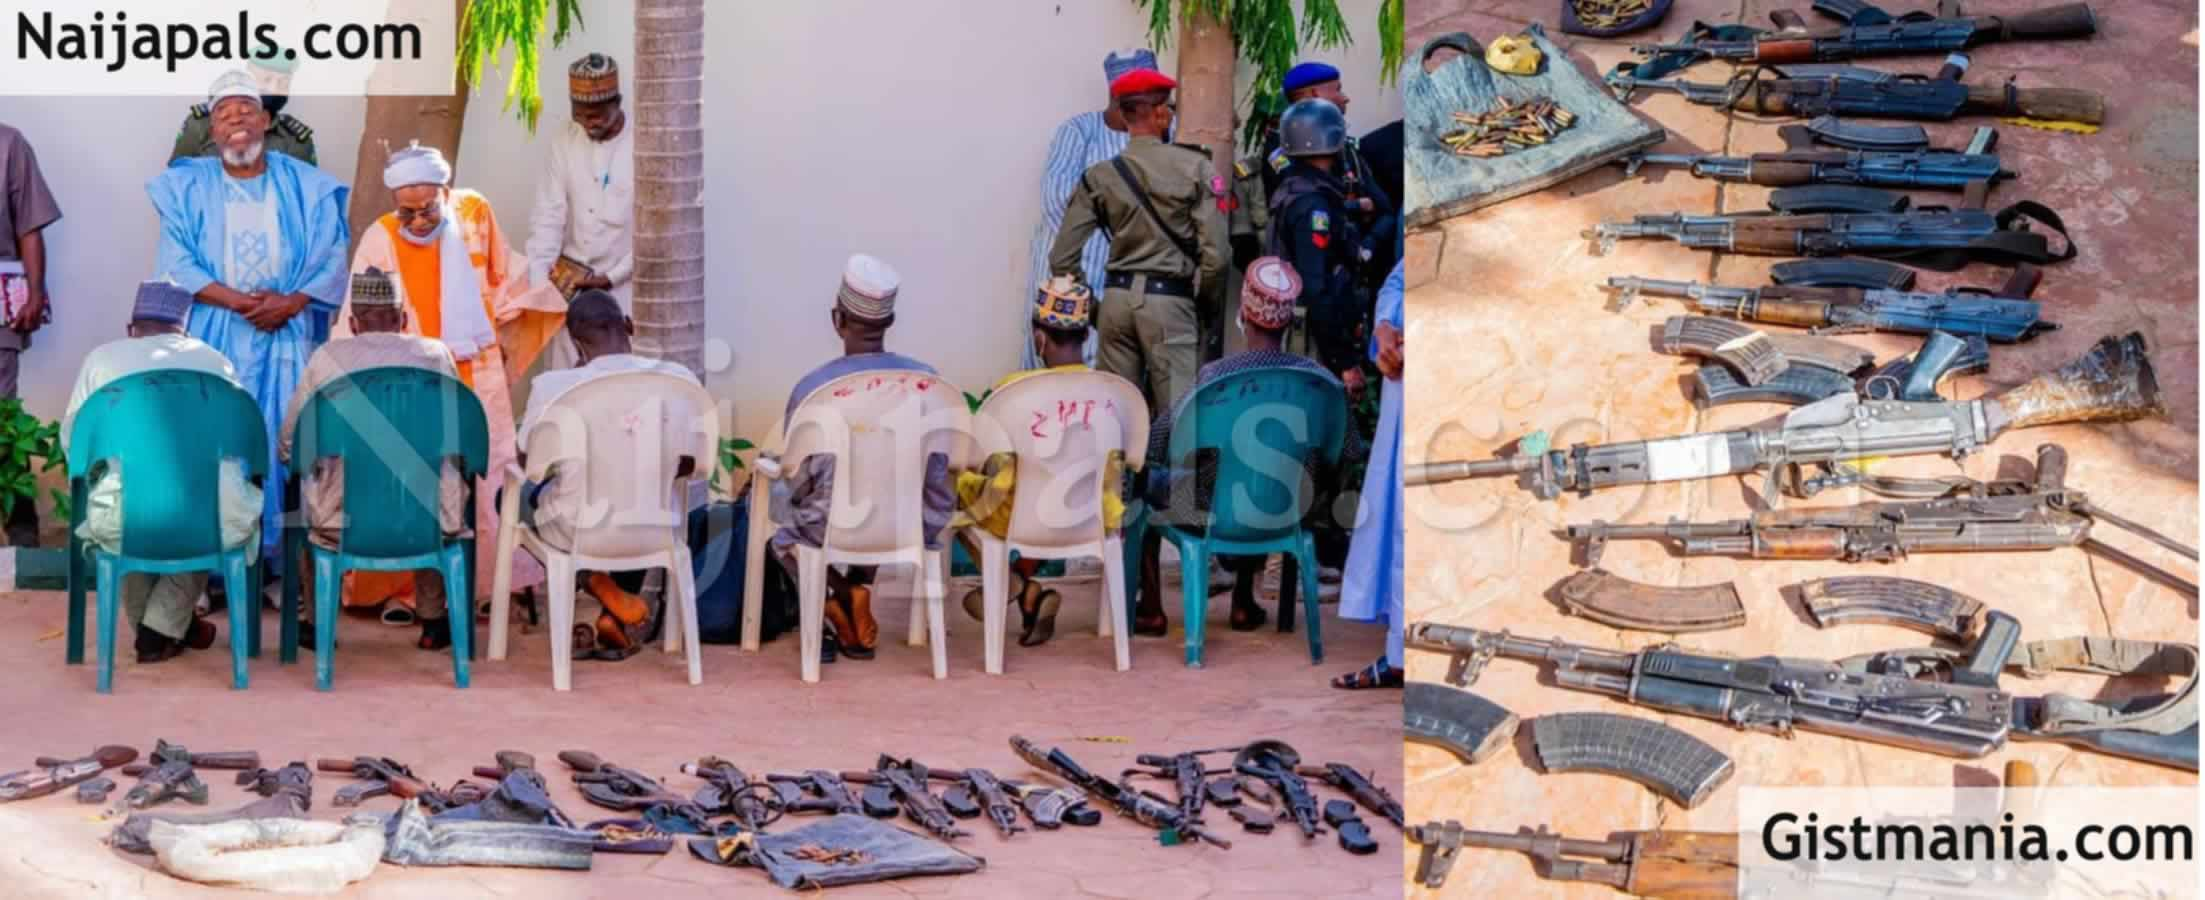 We Decided To Kill 50 People For Every Slain Herdsman - Head Of Zamfara Bandits Confesses